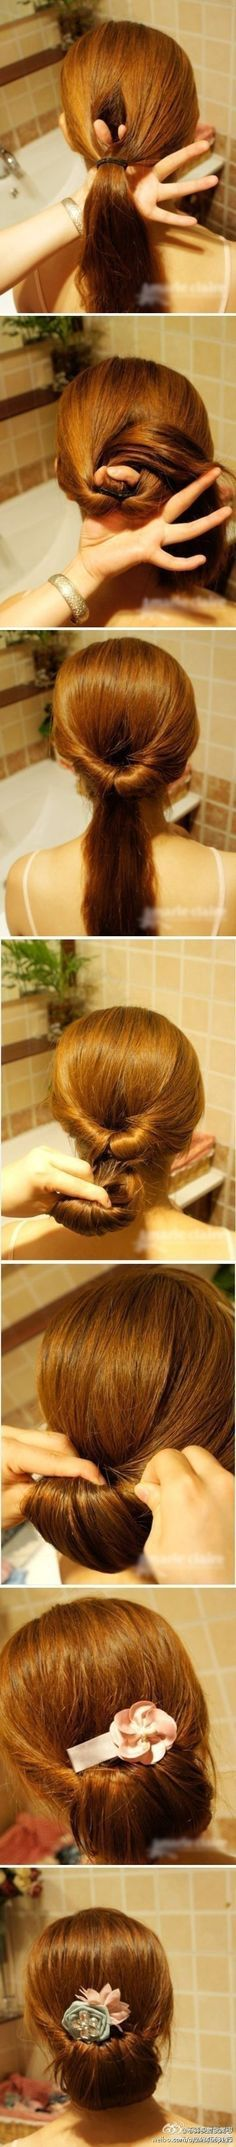 25 Ways to Style Beautiful Summer Hairstyles | Hairstyles Weekly